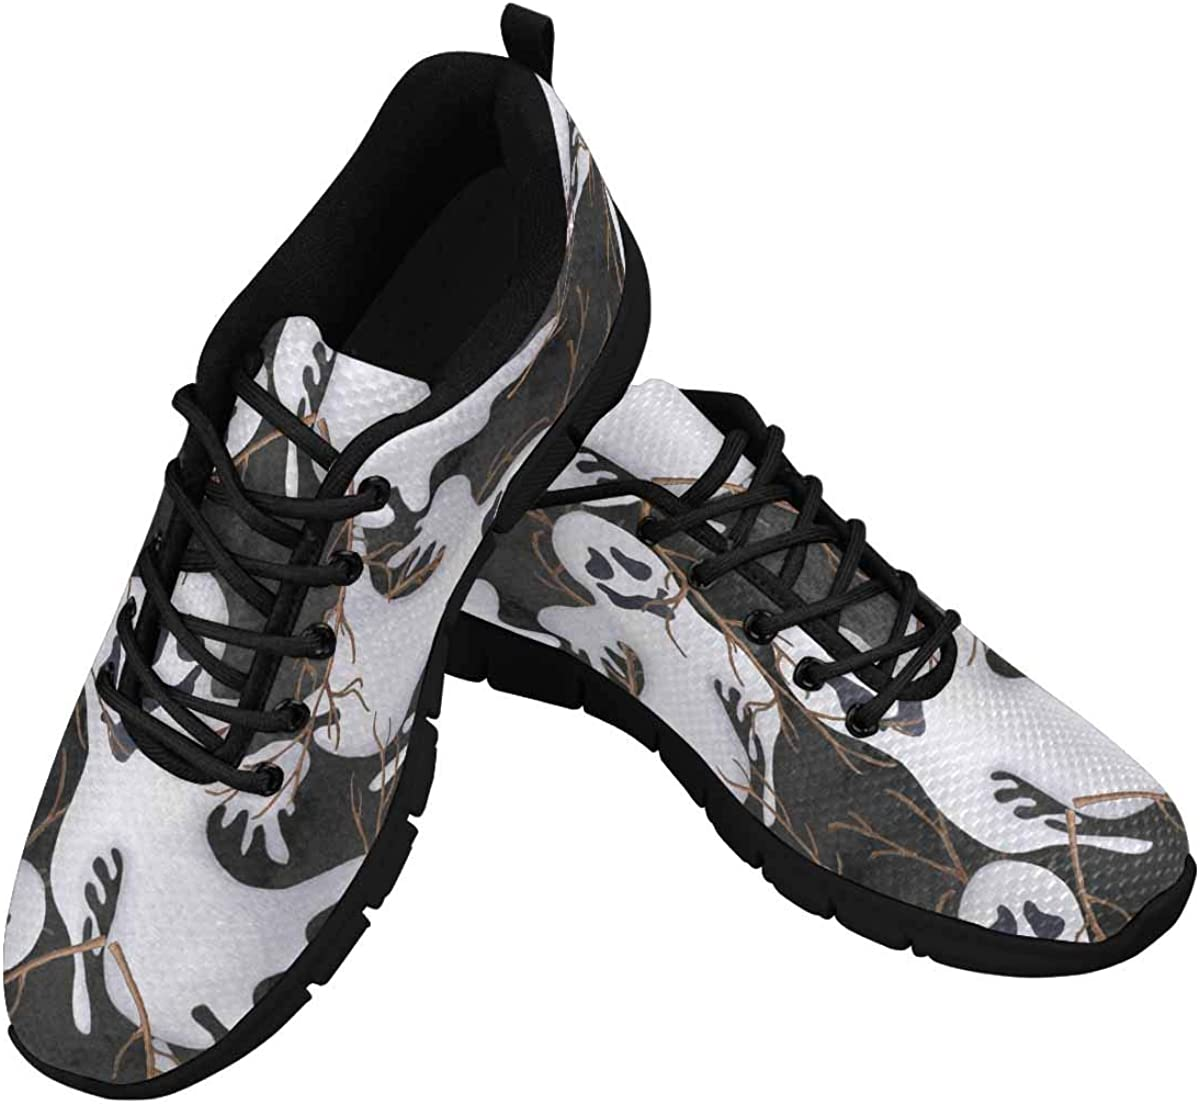 INTERESTPRINT White Ghosts Branches Women's Athletic Walking Shoes Comfort Mesh Non Slip